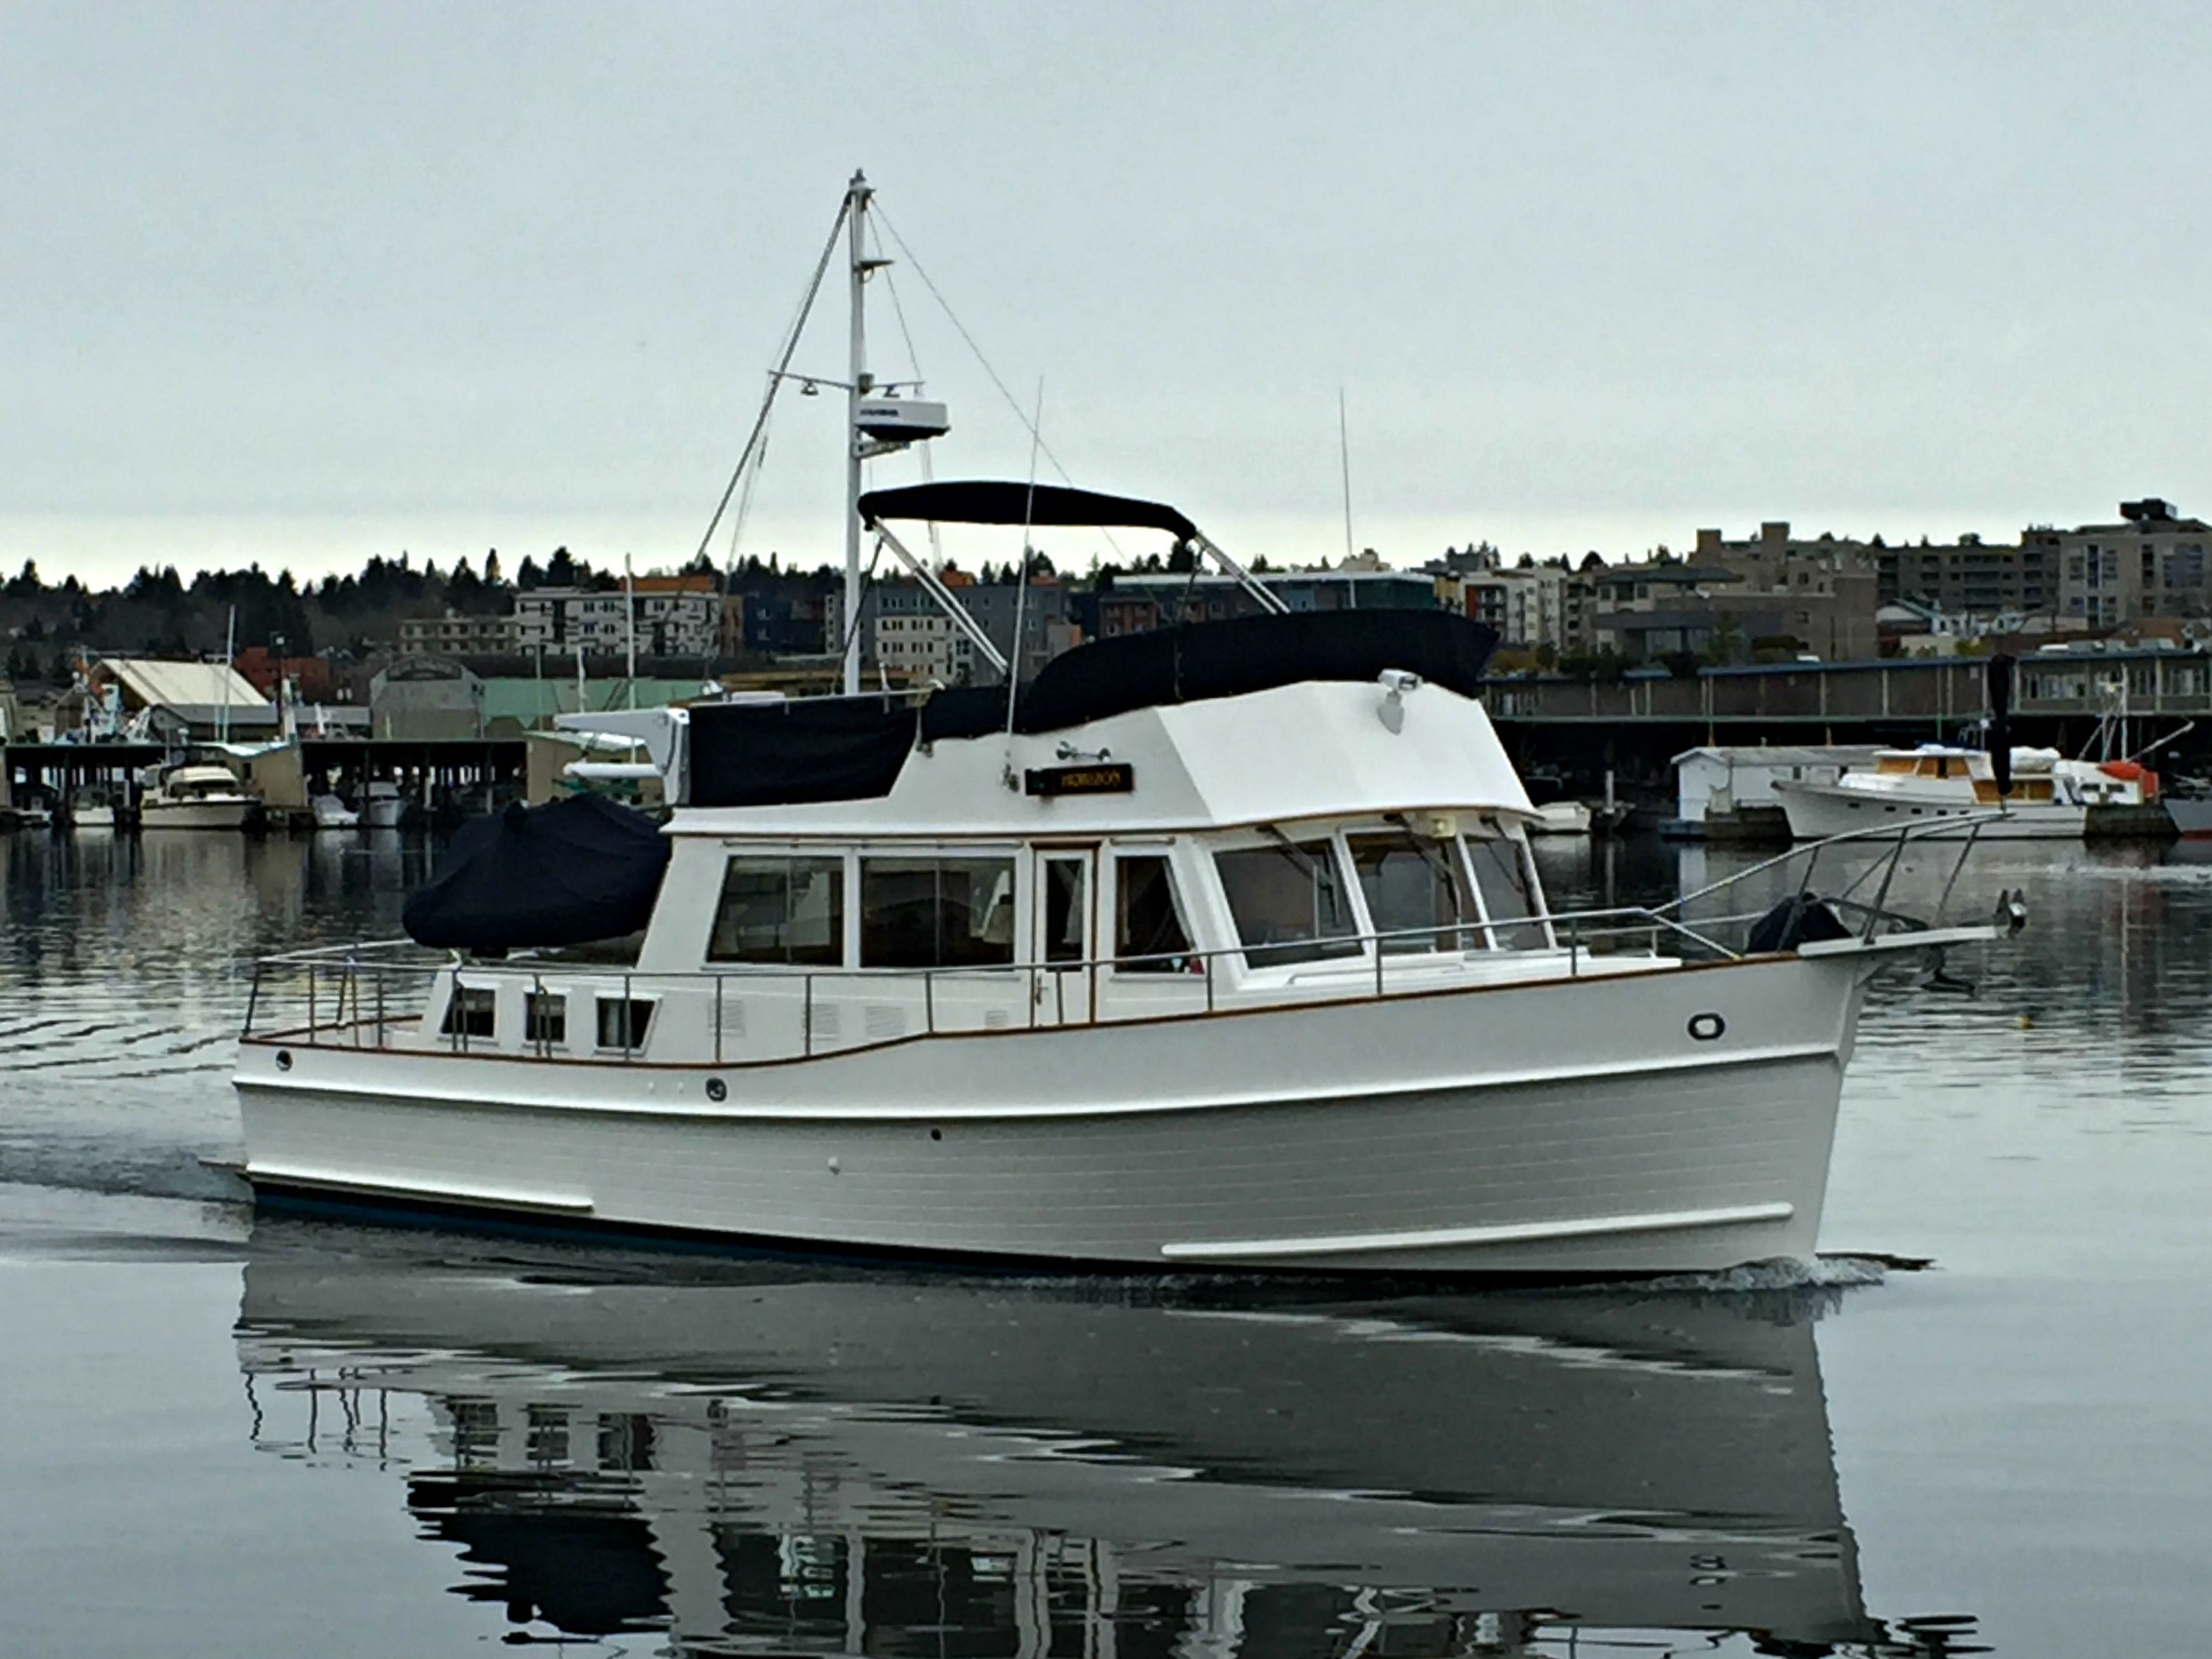 1998 Grand Banks 42 Classic In Seattle Wa Soldboats Grandbanks Trawlers Grand Banks Yachts Boat Classic Boats